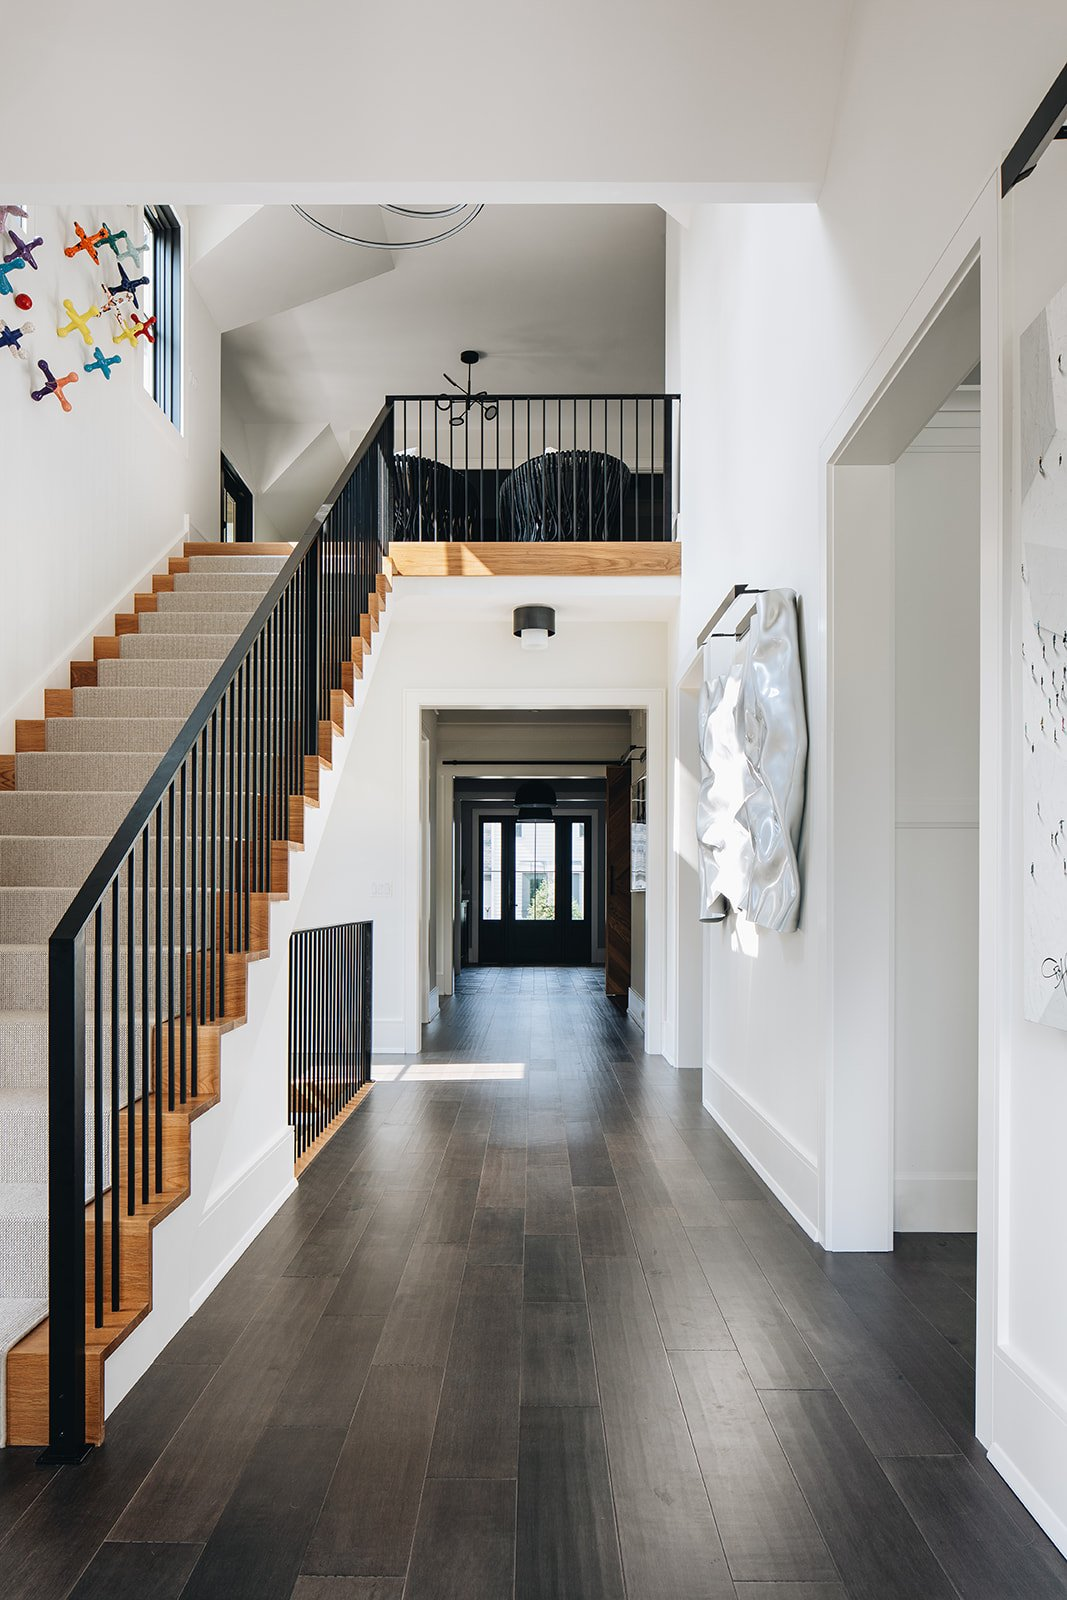 Stairs and interior of Aspen vs Wheaton